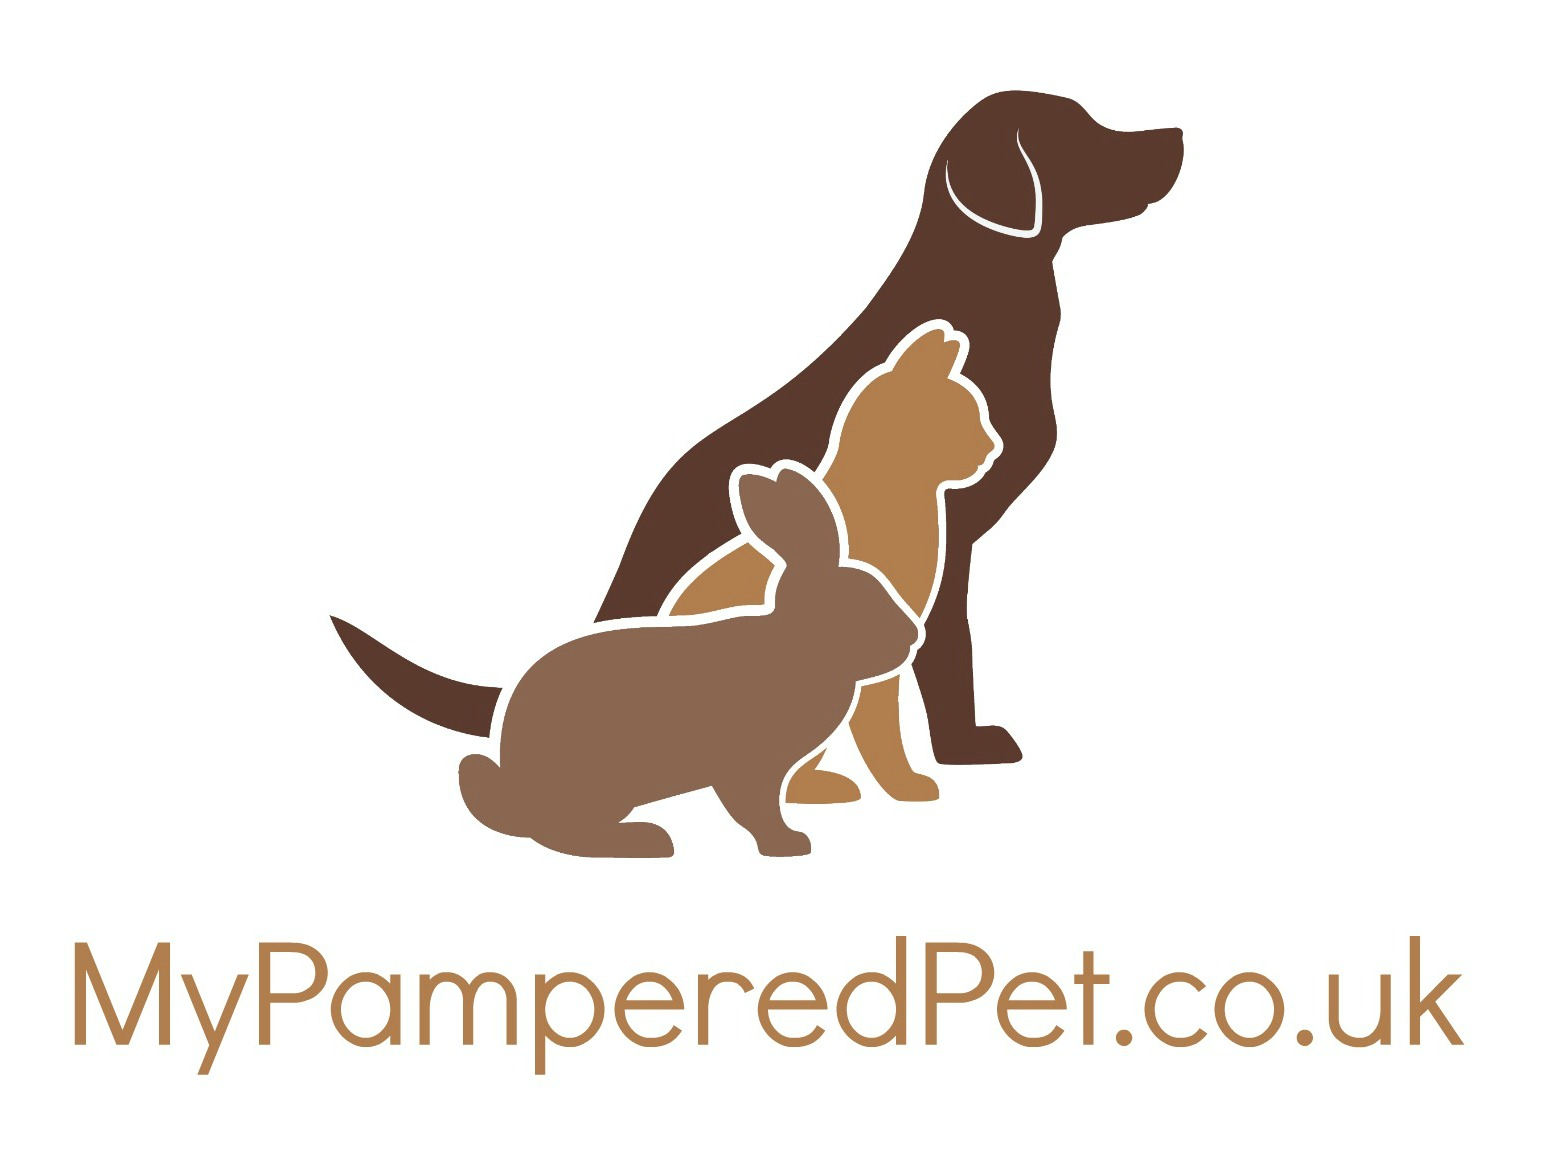 e8286cbf1590 Gifts for Pets and Owners - MyPamperedPet.co.uk